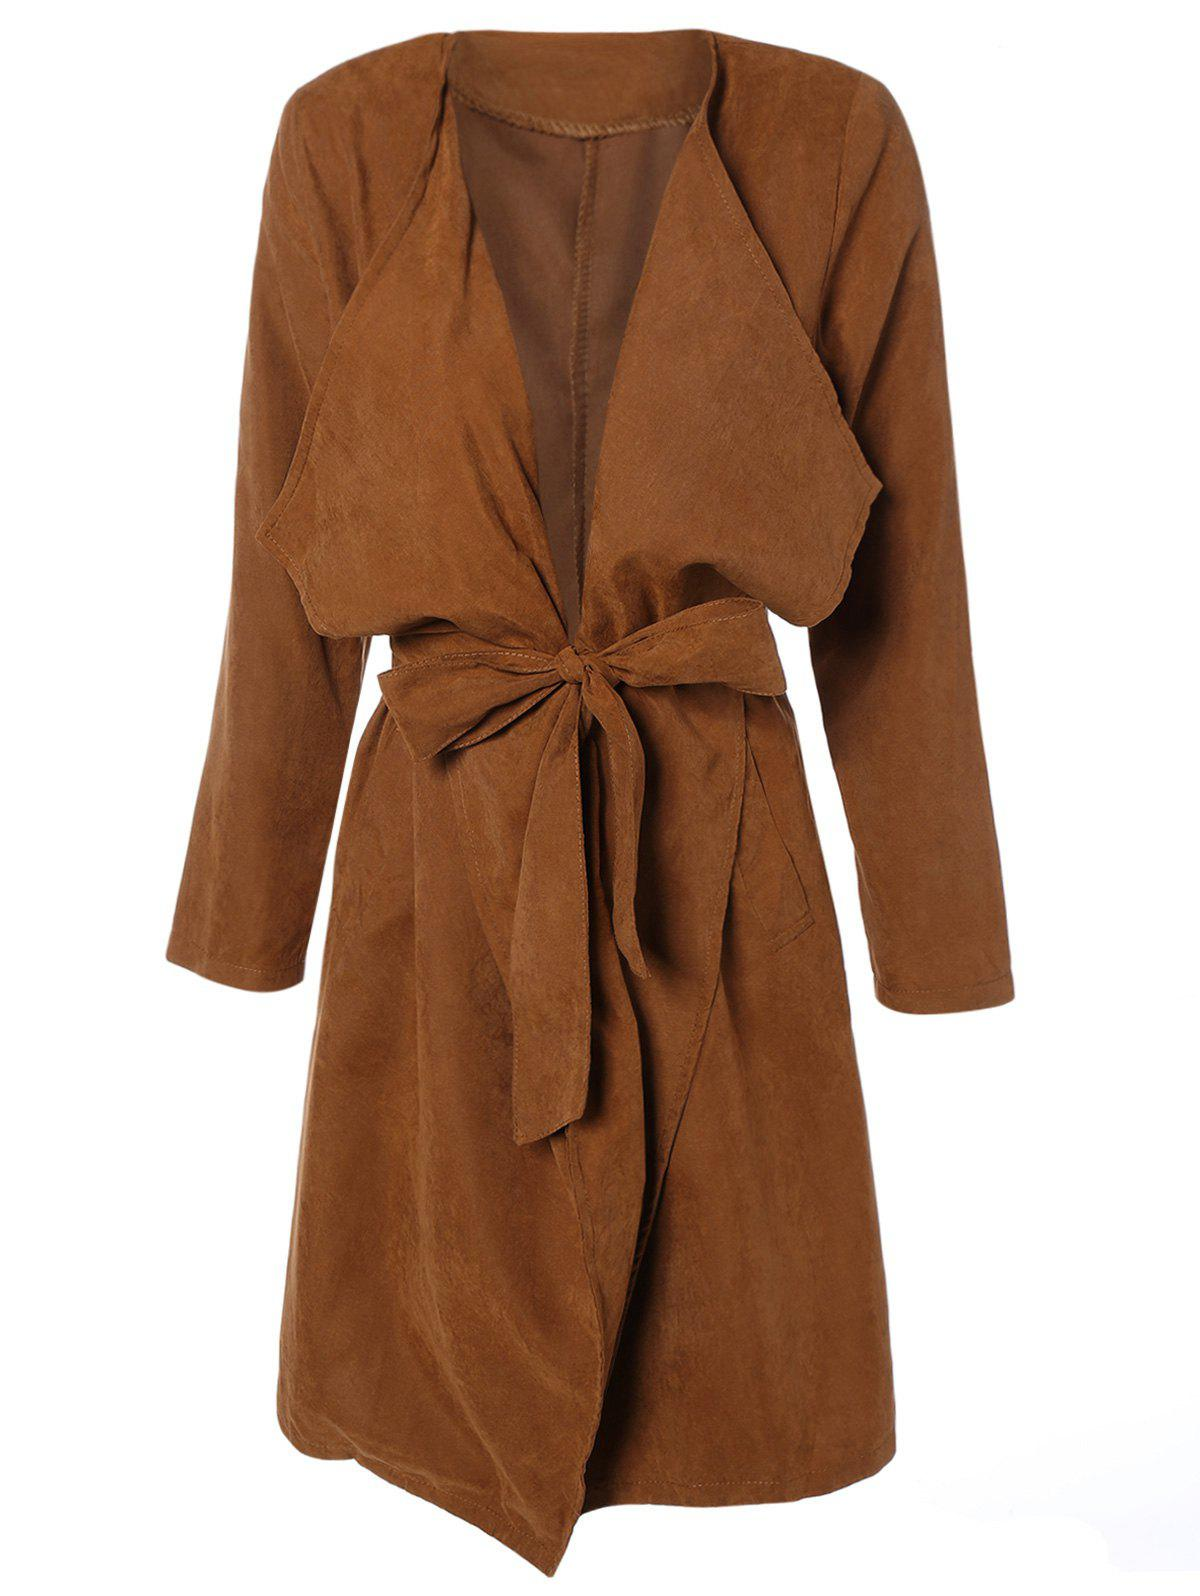 Hot Draped Wrap Coat with Belt